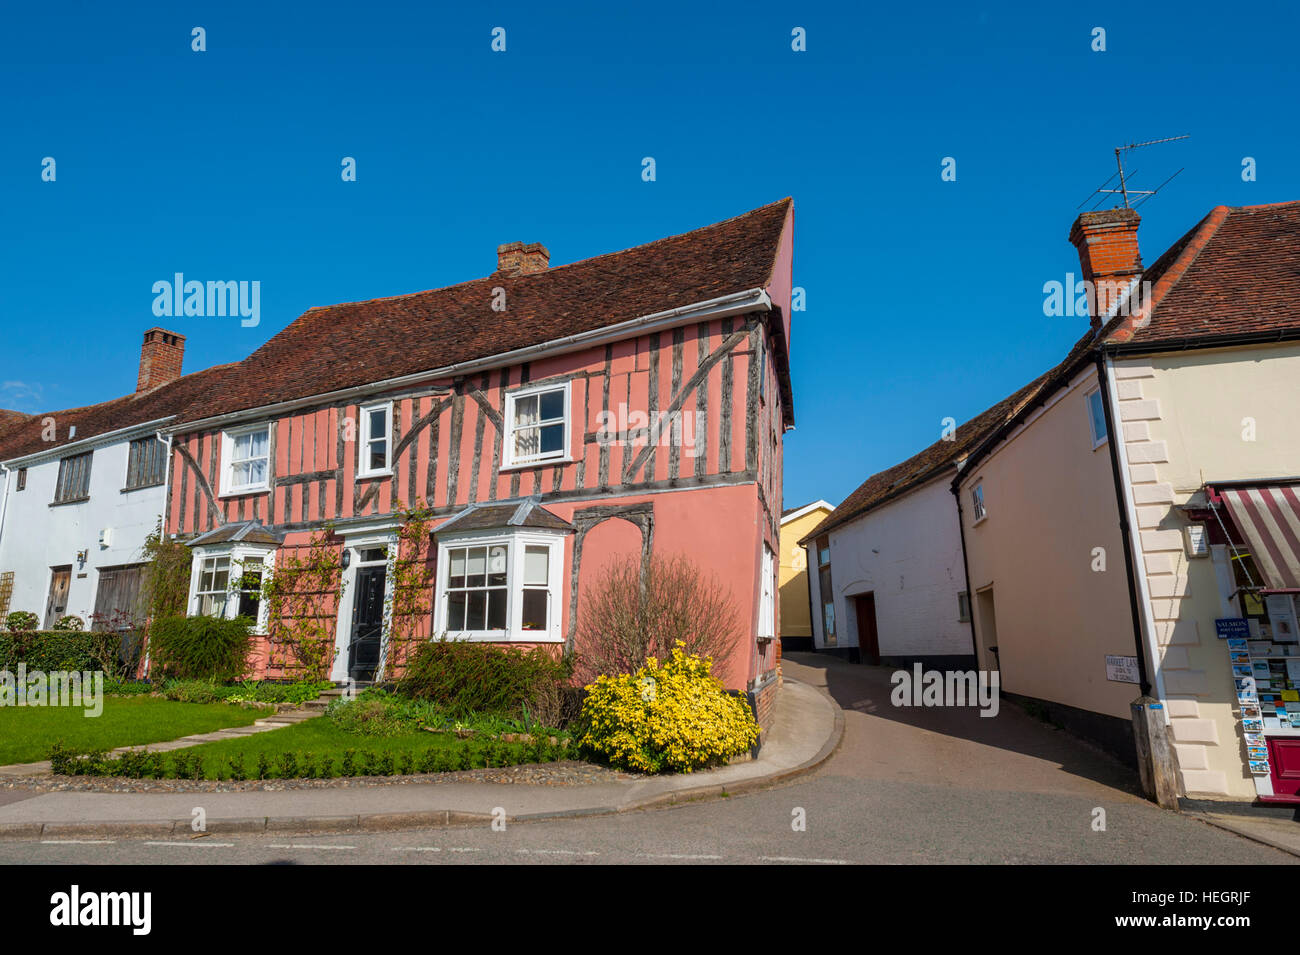 Half Timbered houses in Lavenham Suffolk - Stock Image